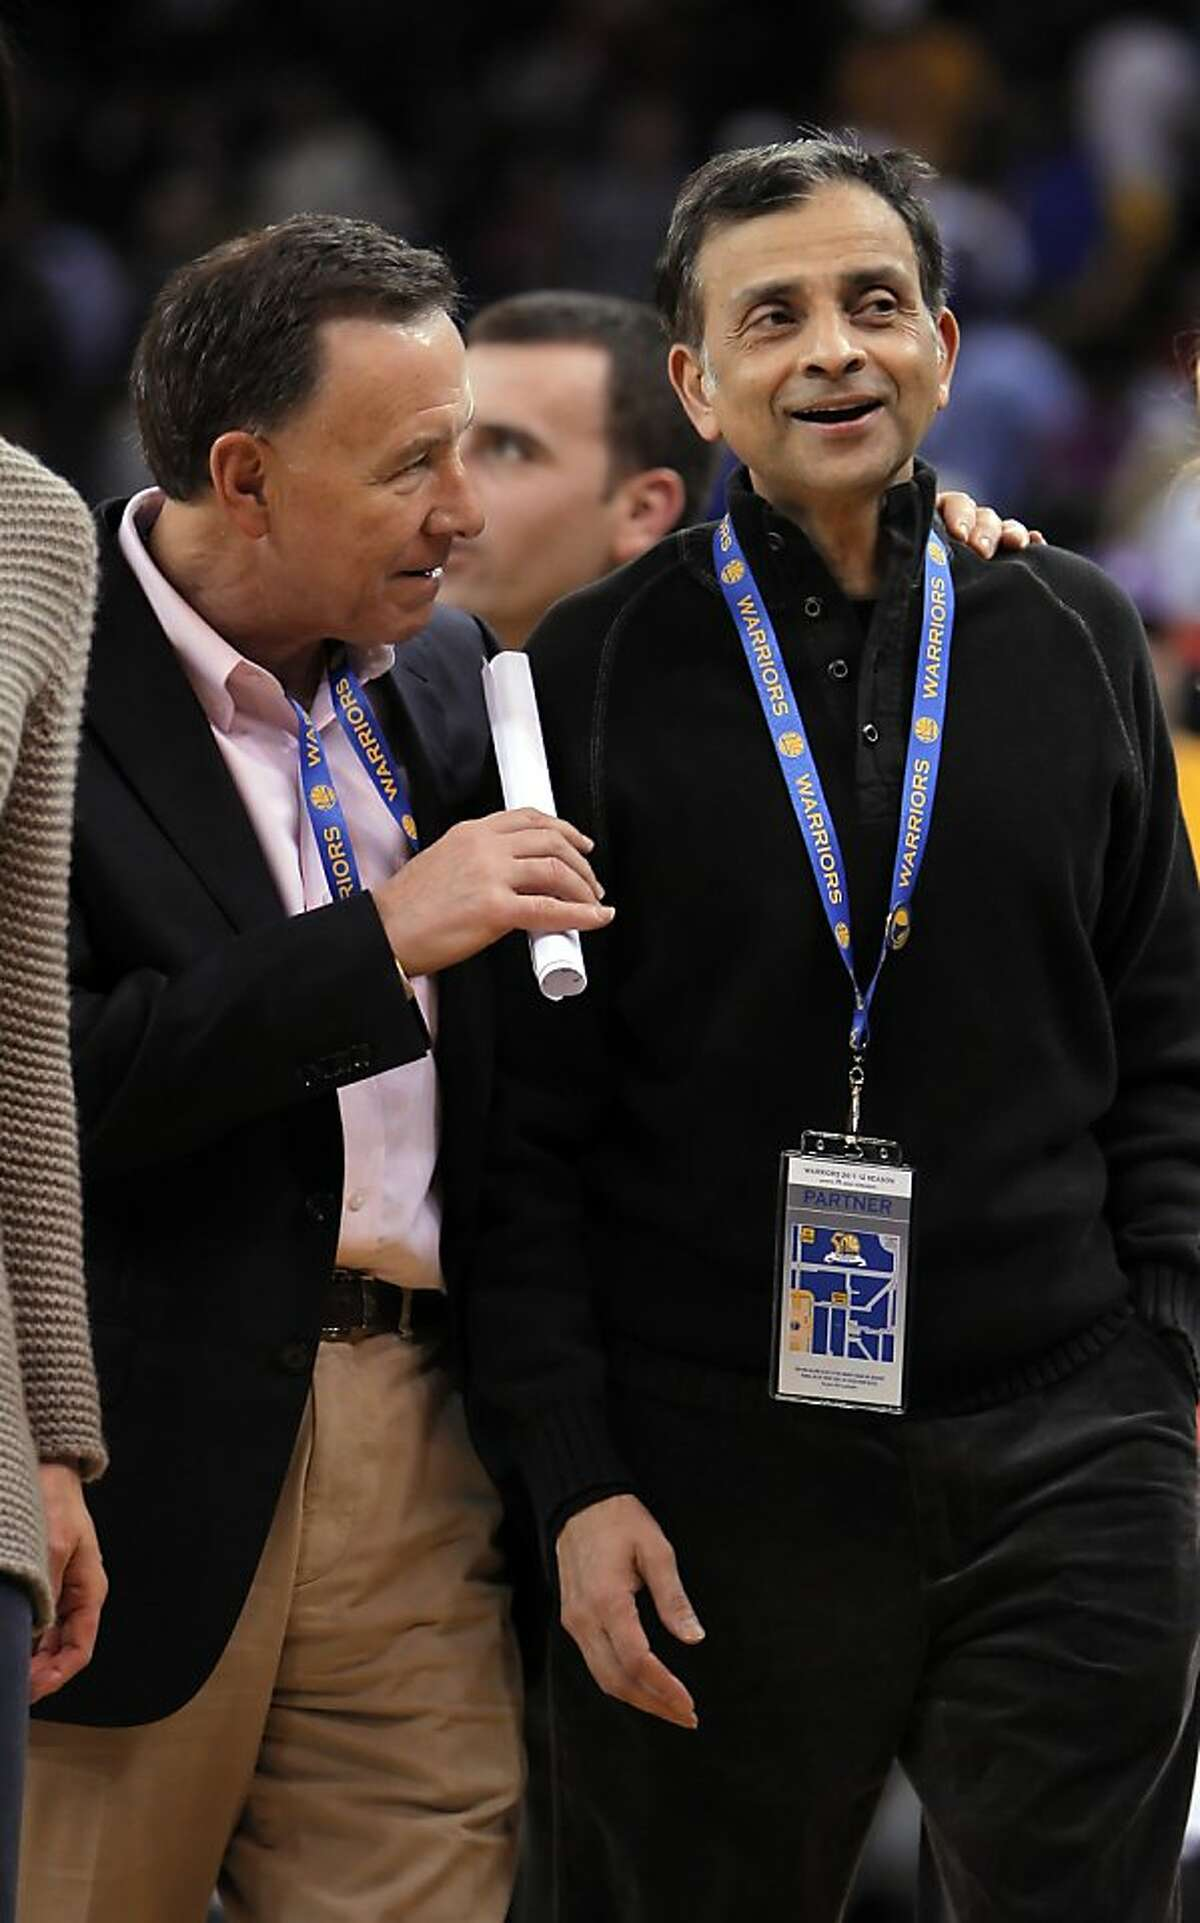 Vivek Ranadive, right, part owner of the Golden State Warriors, is CEO of Tibco Software, and the NBA's first Indian-American owner of a team. Here he speaks with Carl Pascarella, left, at halftime of the Warriors game against the Chicago Bulls on Monday, December 26, 2011 at Oracle Arena in Oakland, Calif.